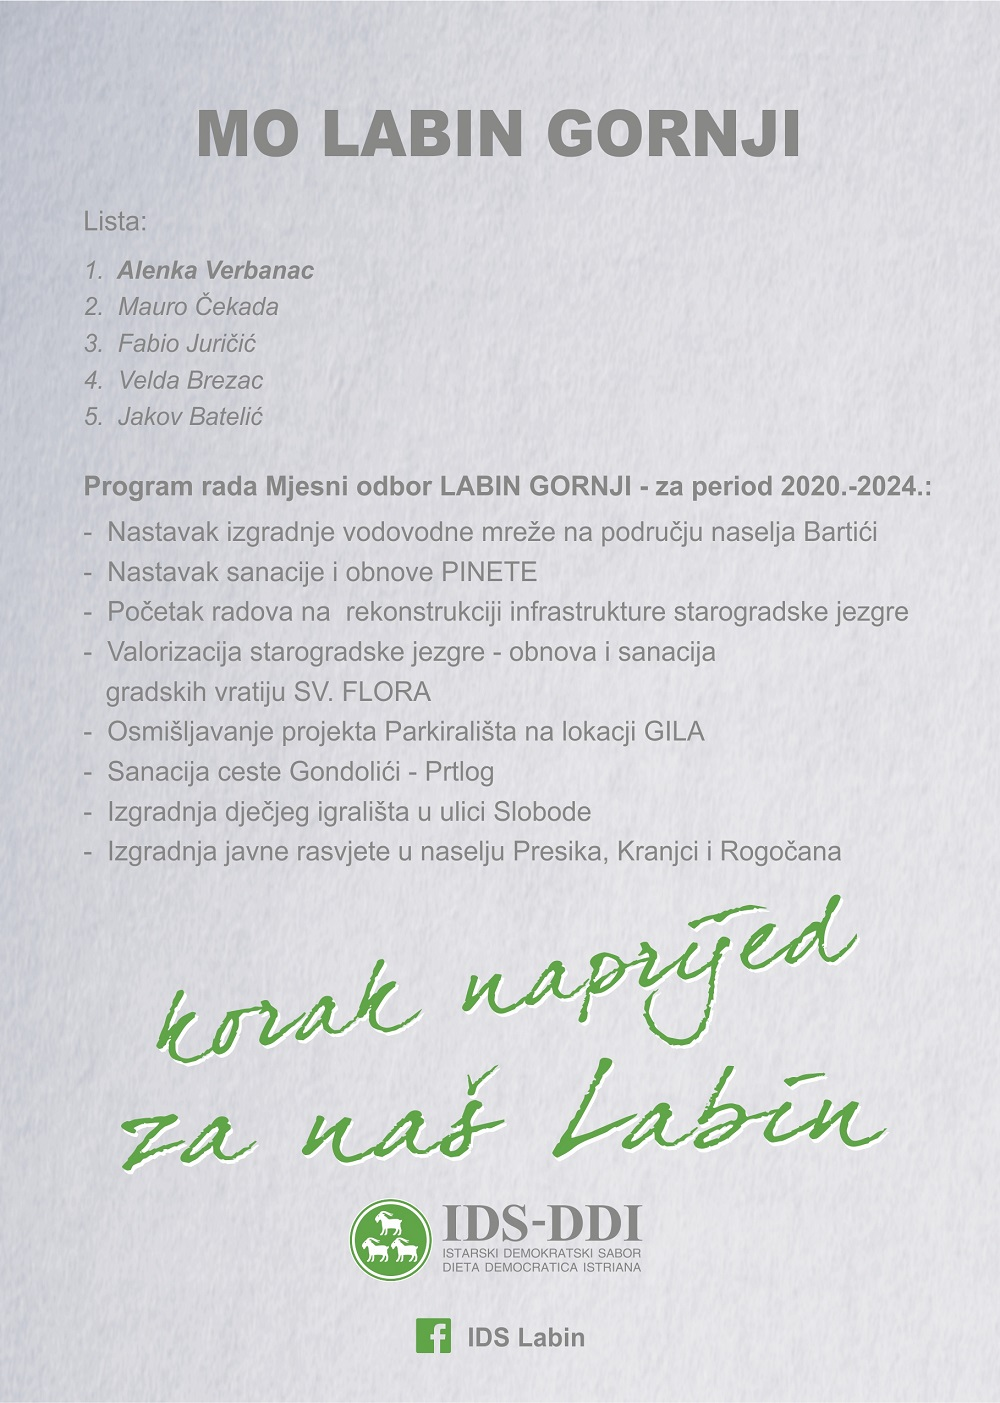 Labin gornji program[113754]